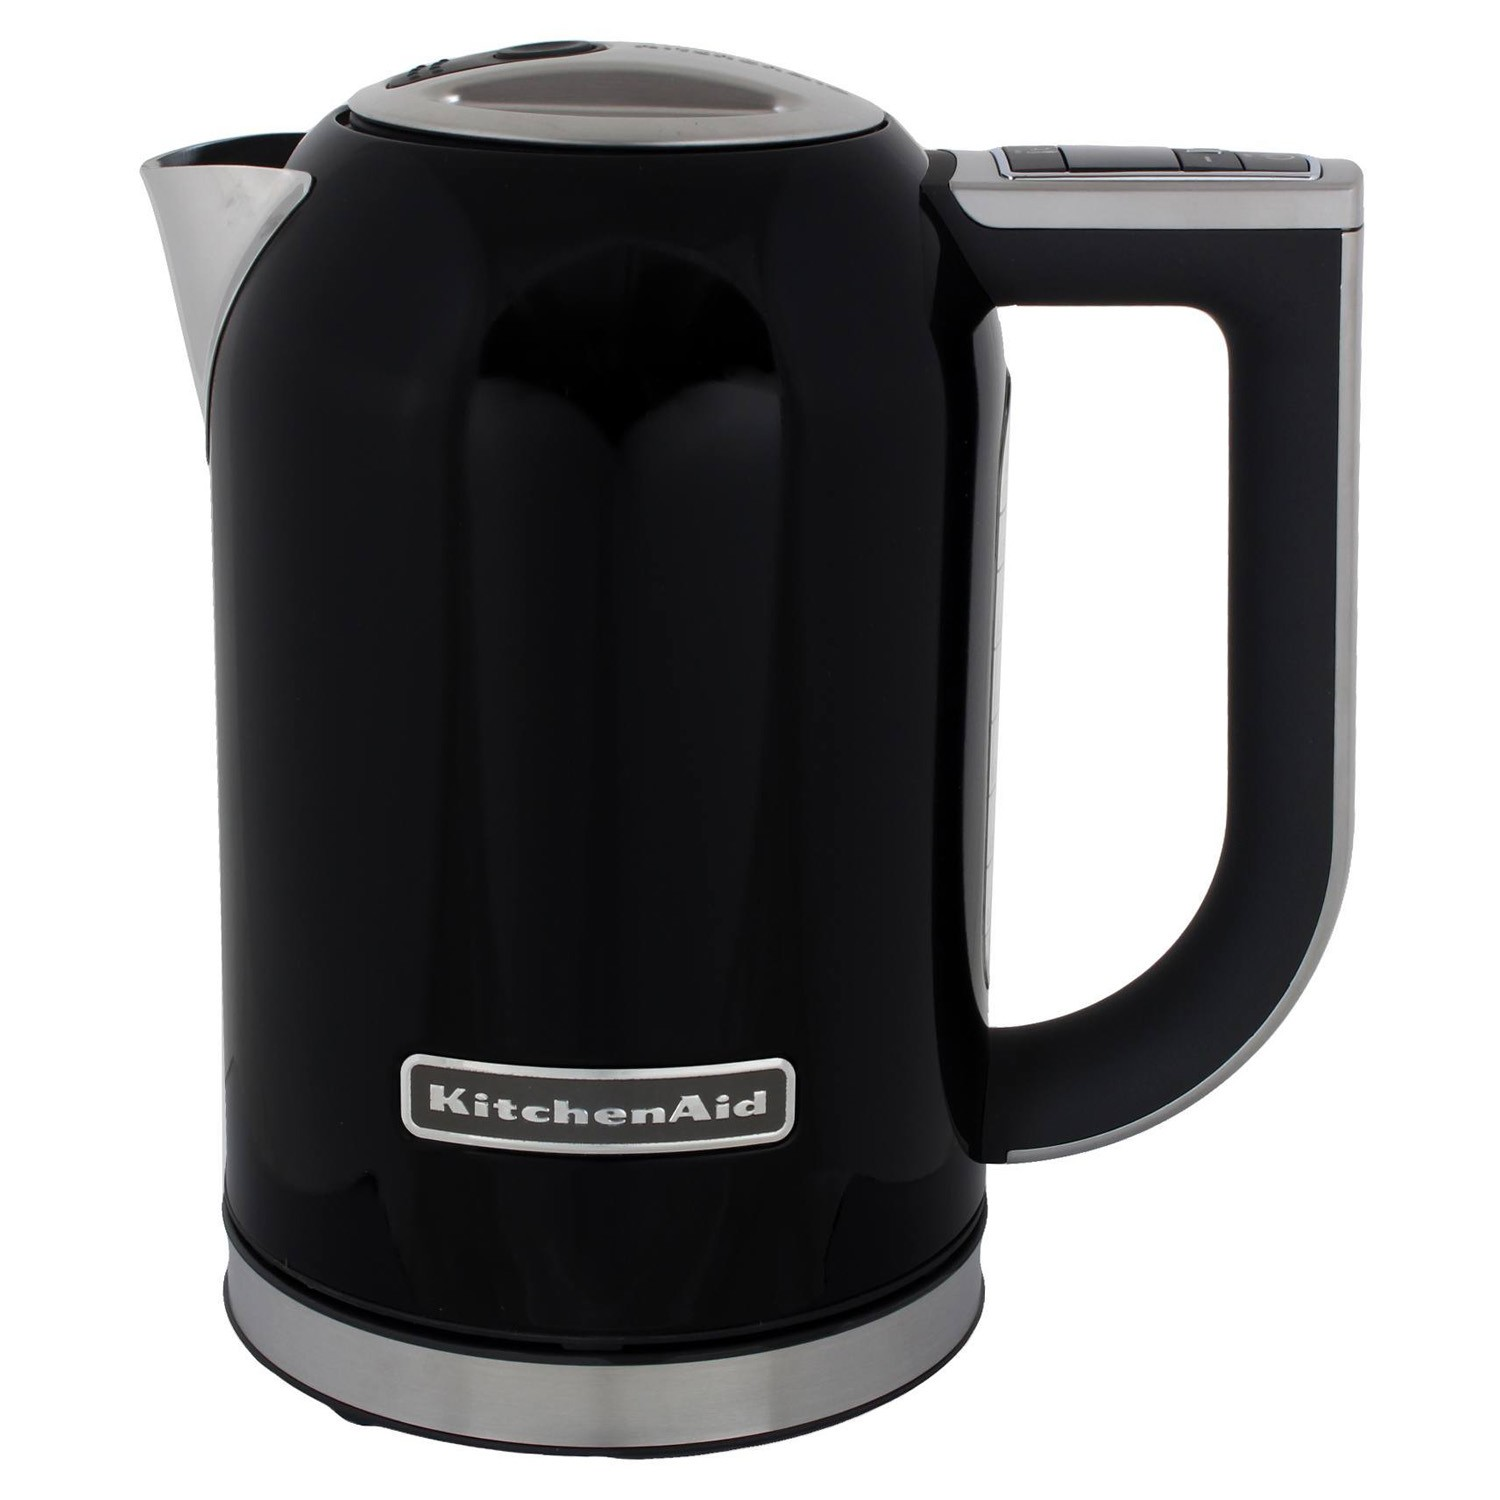 Kitchenaid 1 7 litre kettle onyx black leekes for Kitchenaid 0 finance